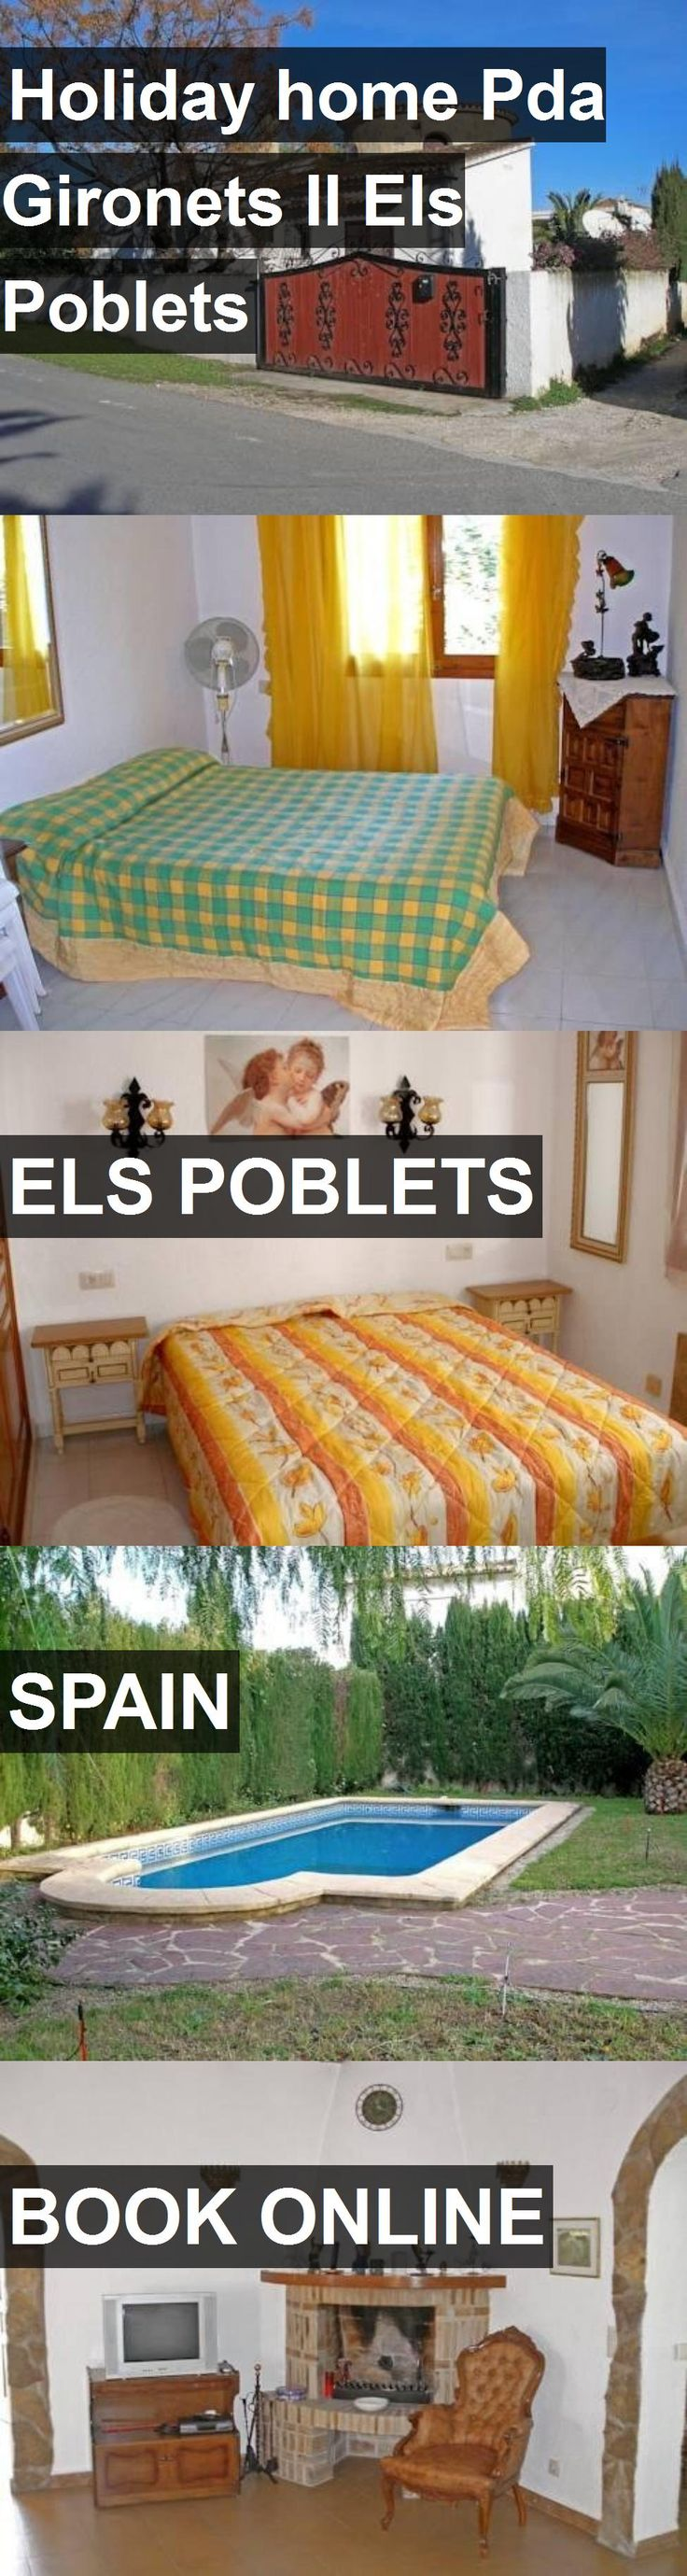 Hotel Holiday home Pda Gironets II Els Poblets in Els Poblets, Spain. For more information, photos, reviews and best prices please follow the link. #Spain #ElsPoblets #travel #vacation #hotel